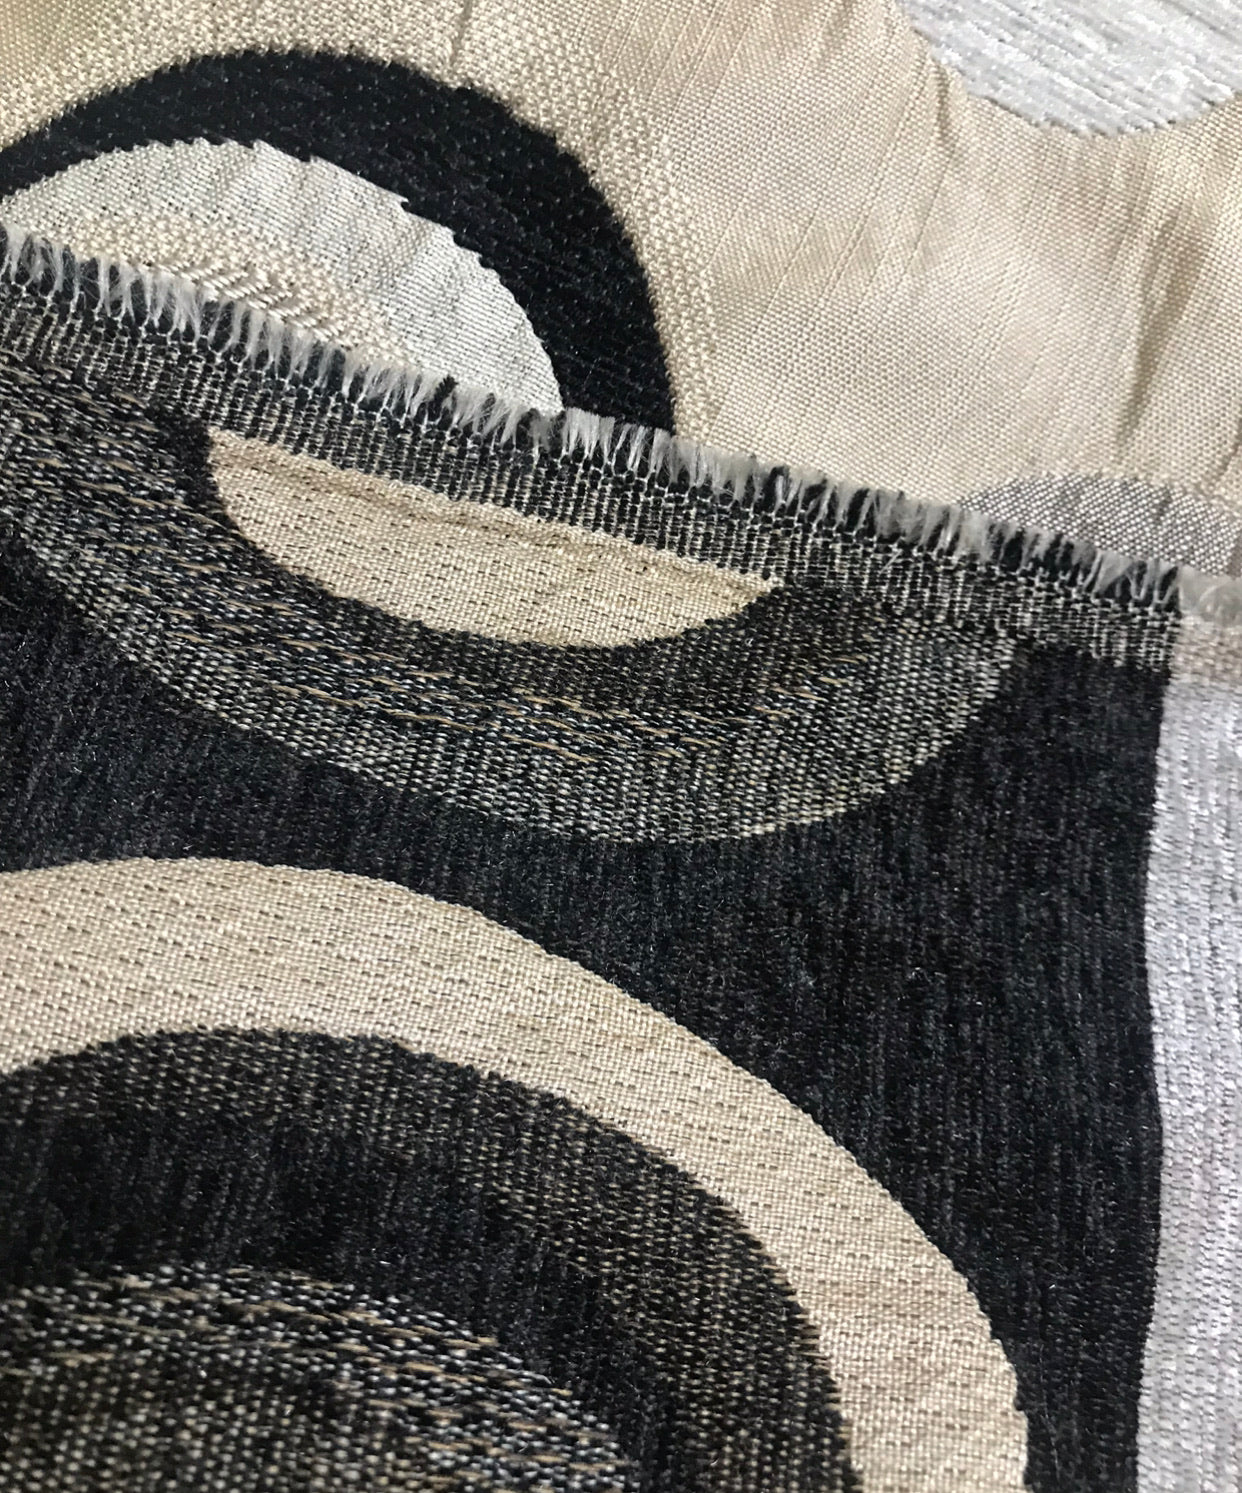 SALE! NEW Designer Burnout Chenille Upholstery Geometric Fabric - Taupe Black Ivory BTY